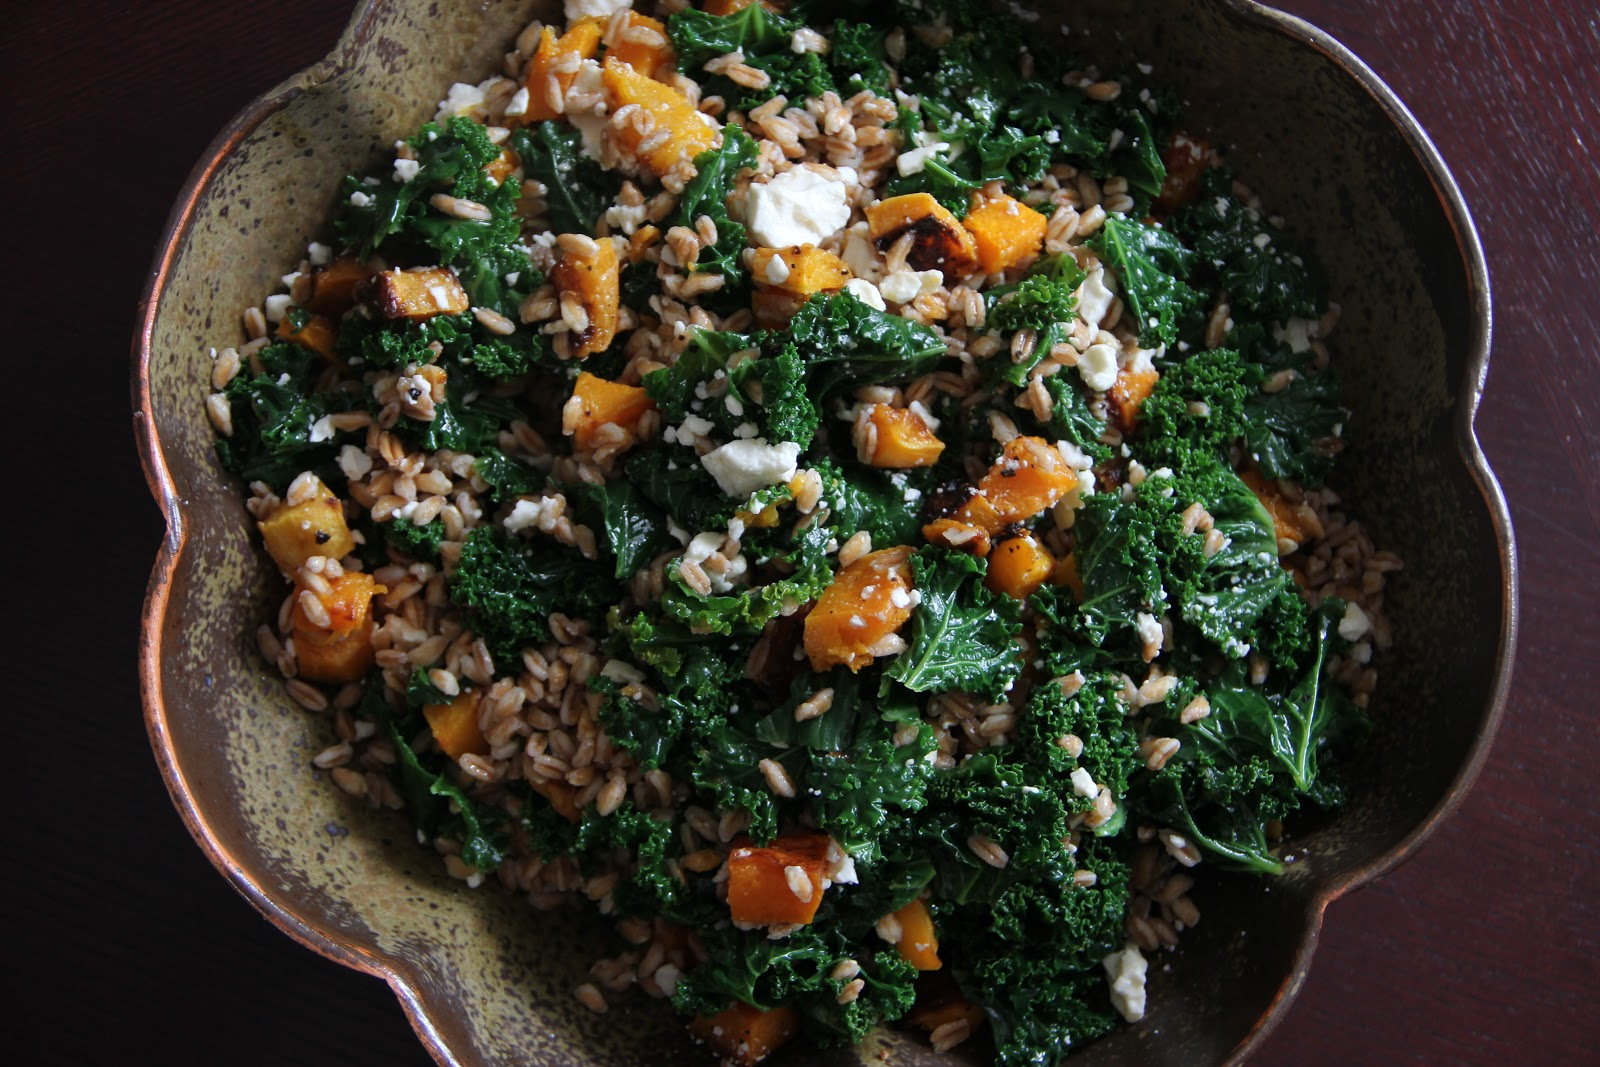 Life By Appointment: Farro Salad with Butternut Squash, Kale, and Feta